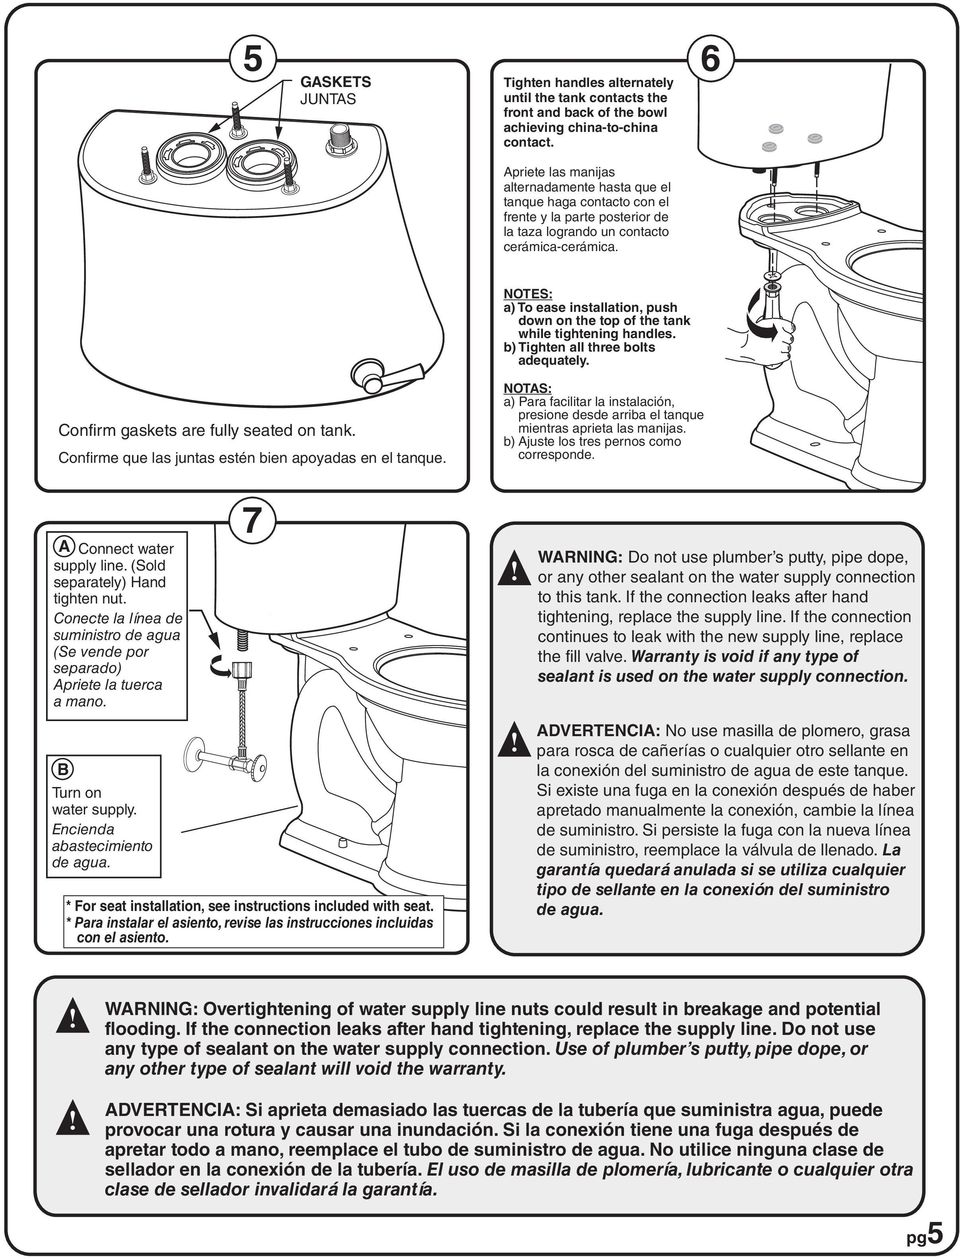 NOTES: a) To ease installation, push down on the top of the tank while tightening handles. b) Tighten all three bolts adequately. Confirm gaskets are fully seated on tank.